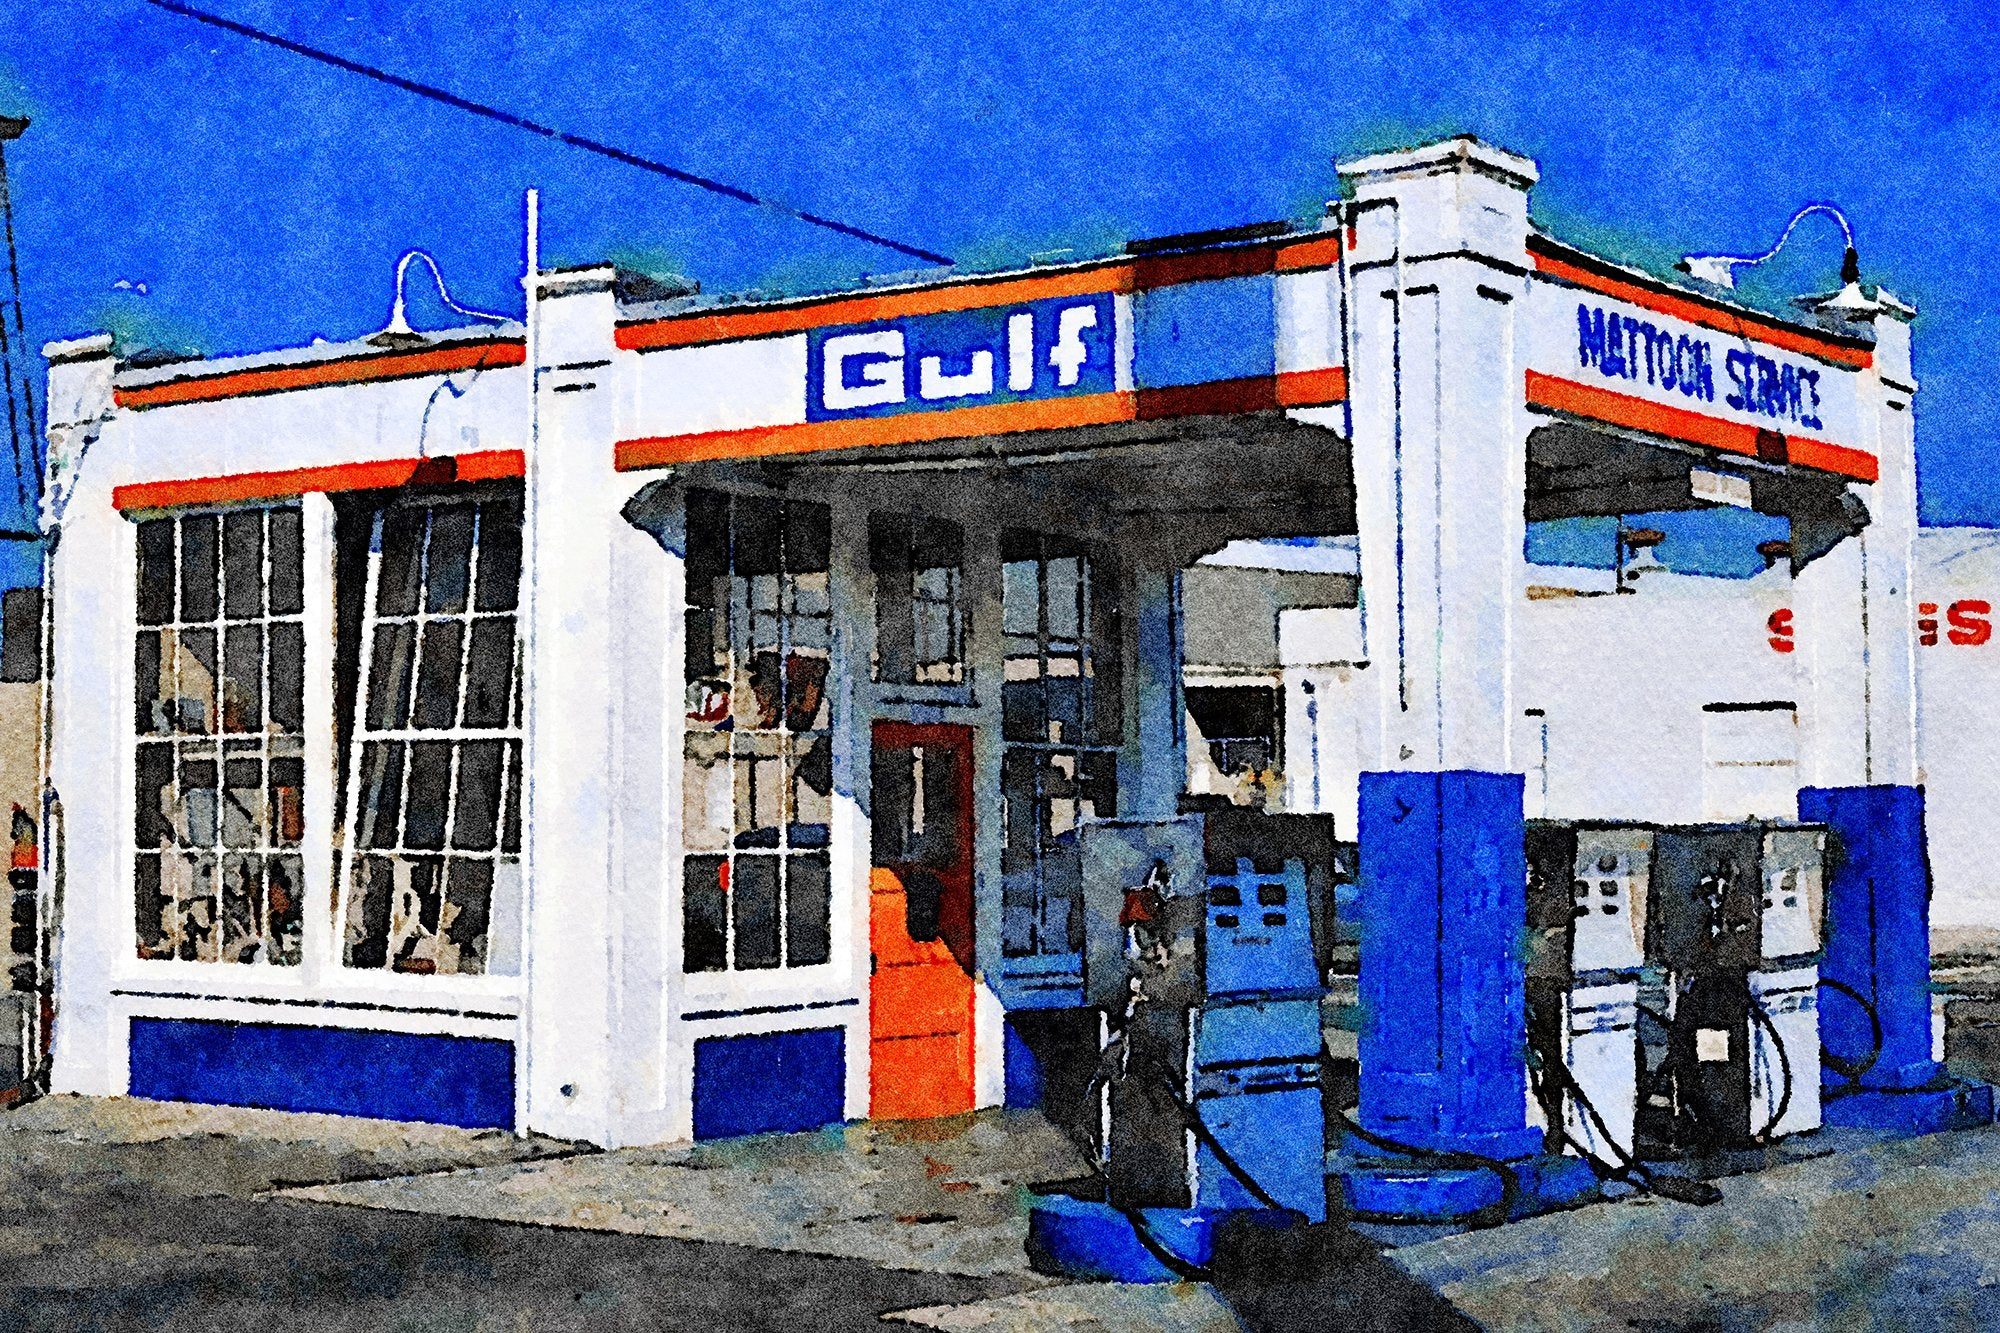 Mattoon Service Station, National and Washington Boulevards, Culver City, California, Reworked, Series 1